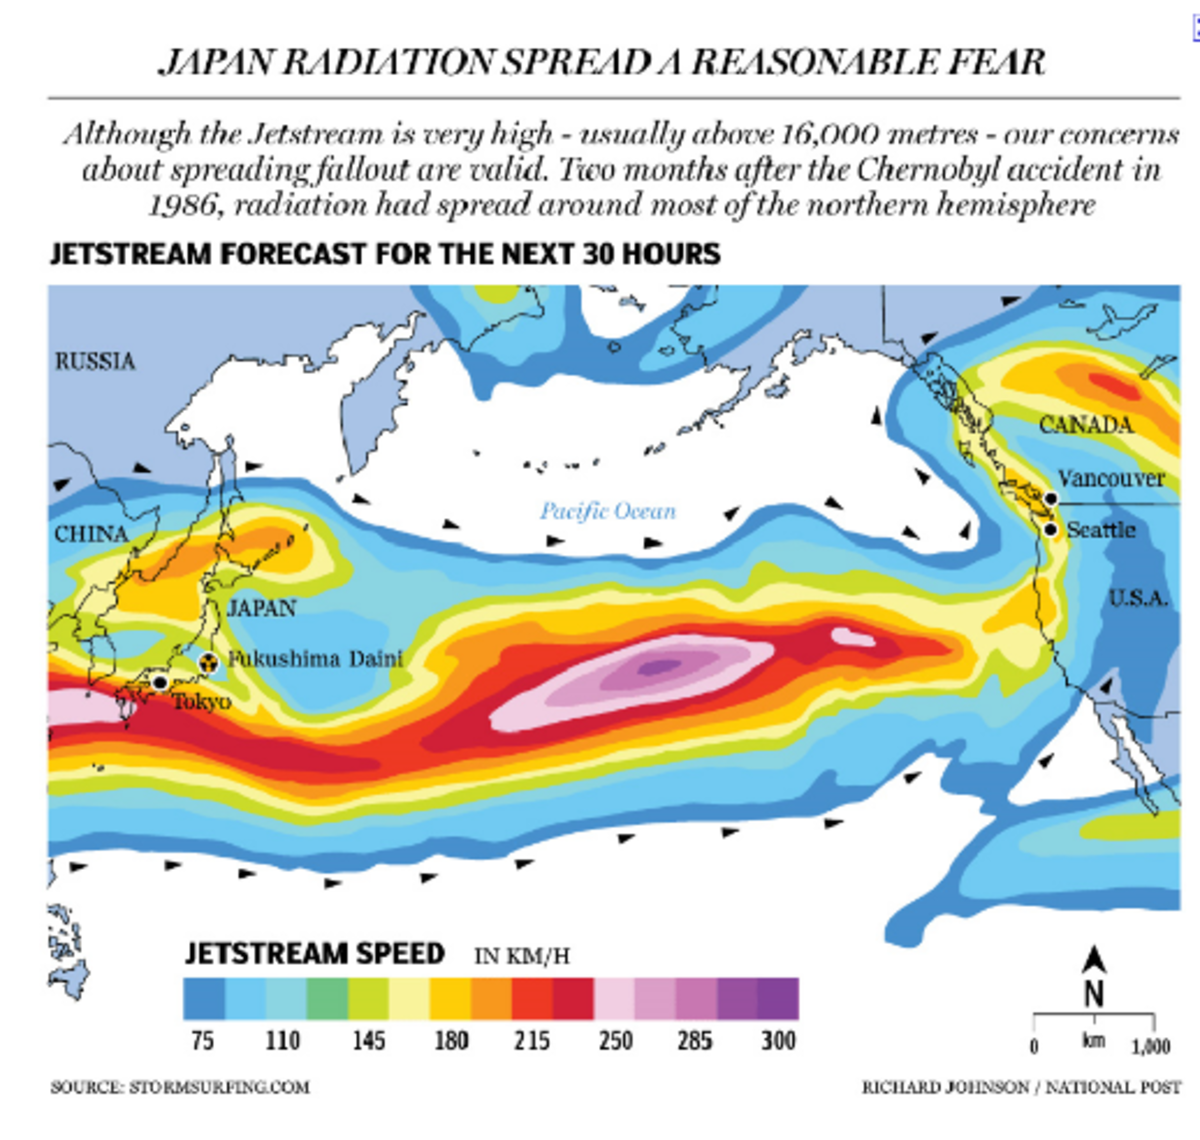 Preventable Nuclear Accidents: Could Fukushima & Chernobyl Have Been Prevented?